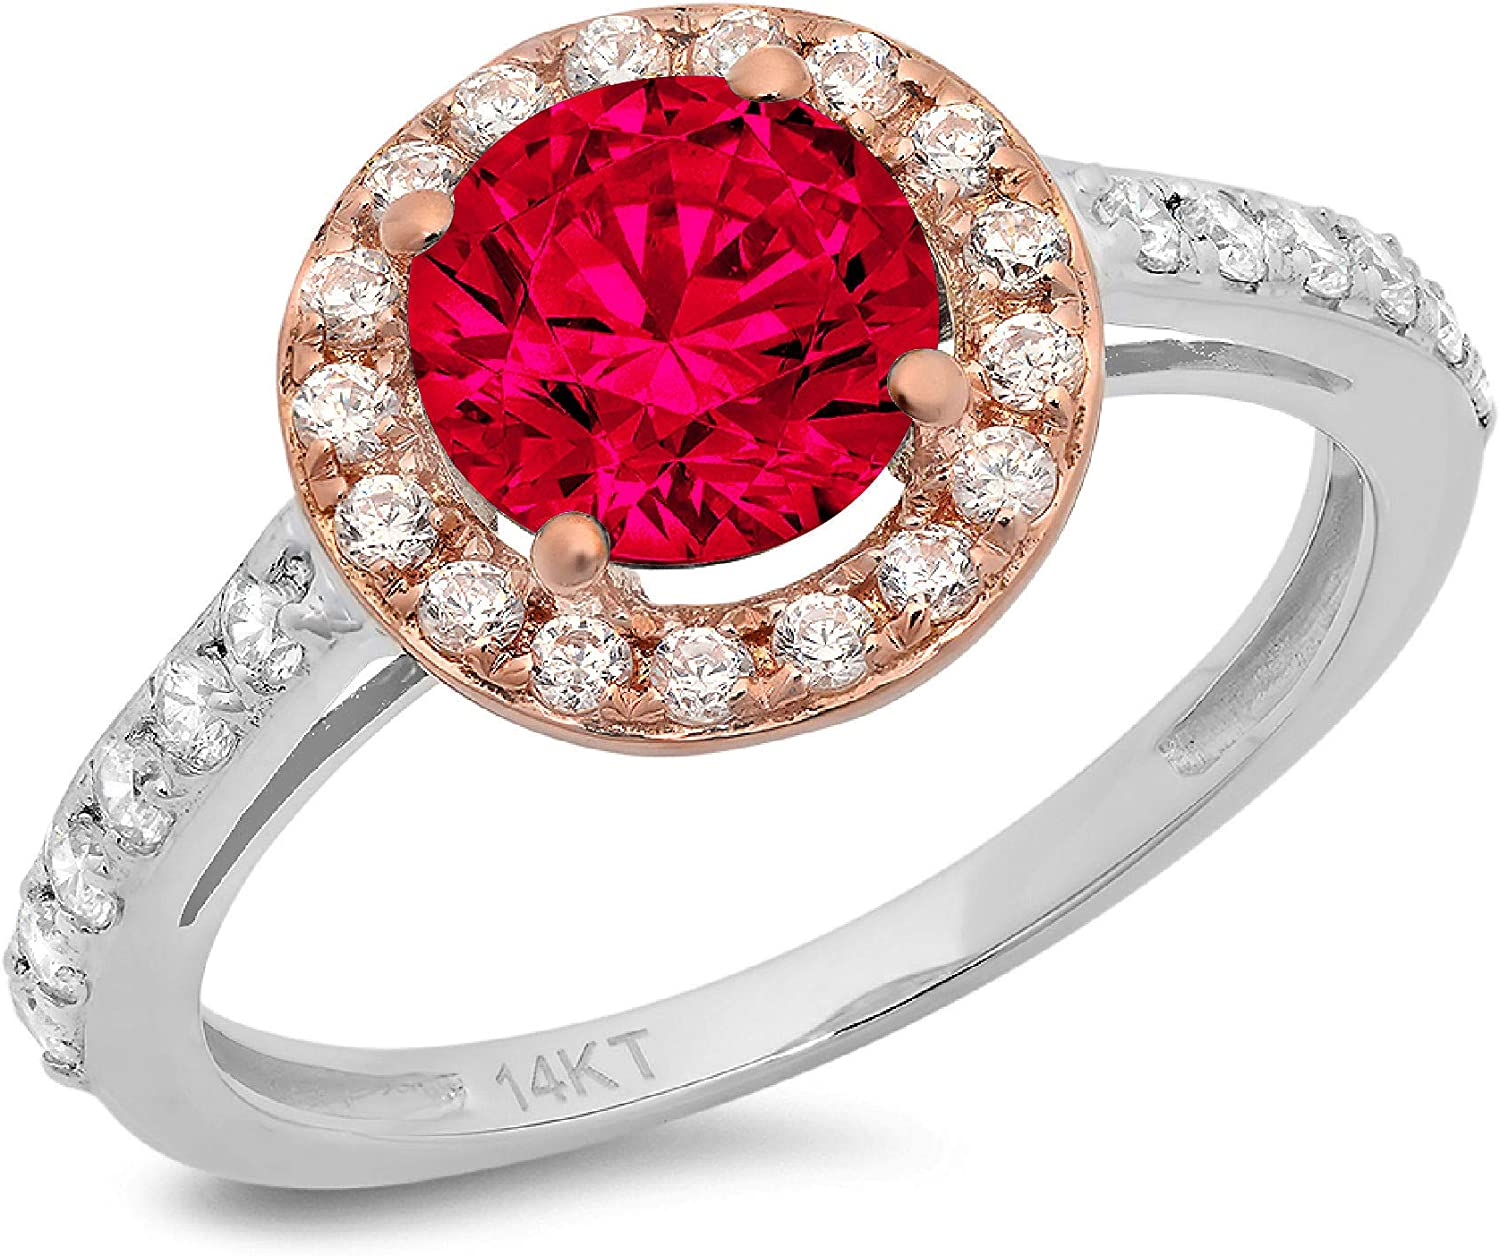 2.45 ct Round Cut Solitaire Halo Genuine Flawles Super beauty product restock Max 72% OFF quality top Stunning accent